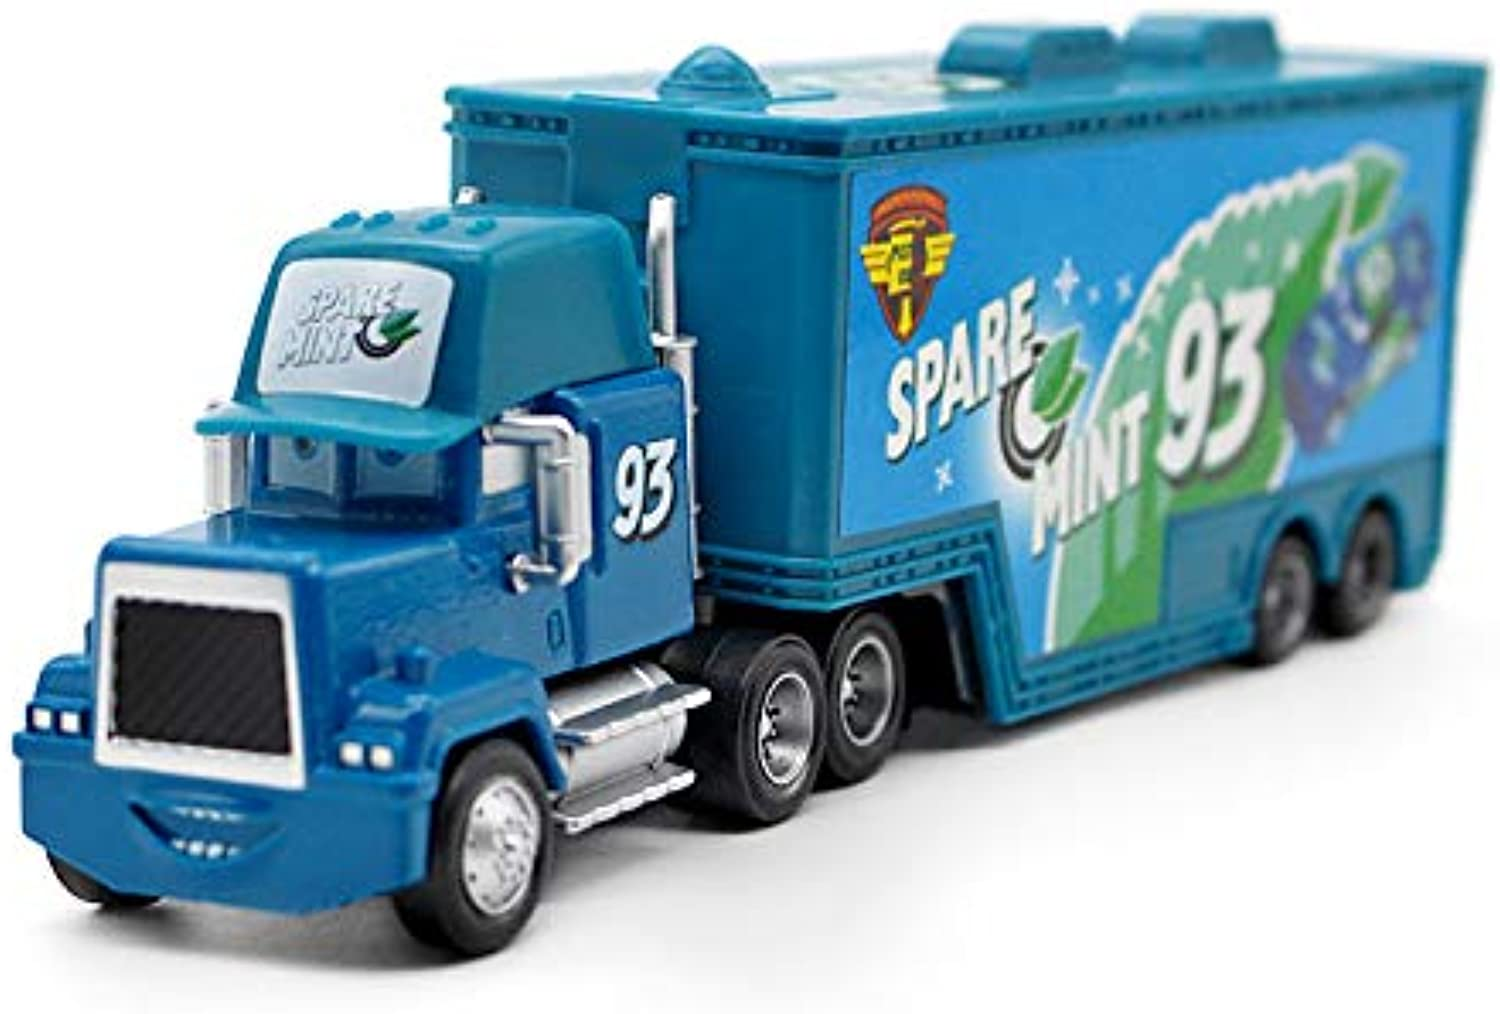 Generic Disney Movie Pixar Cars Lightning McQueen Jackson Storm No.93 Mack Uncle Truck Diecast Alloy Metal Toy Car for Kids Gifts NO 93